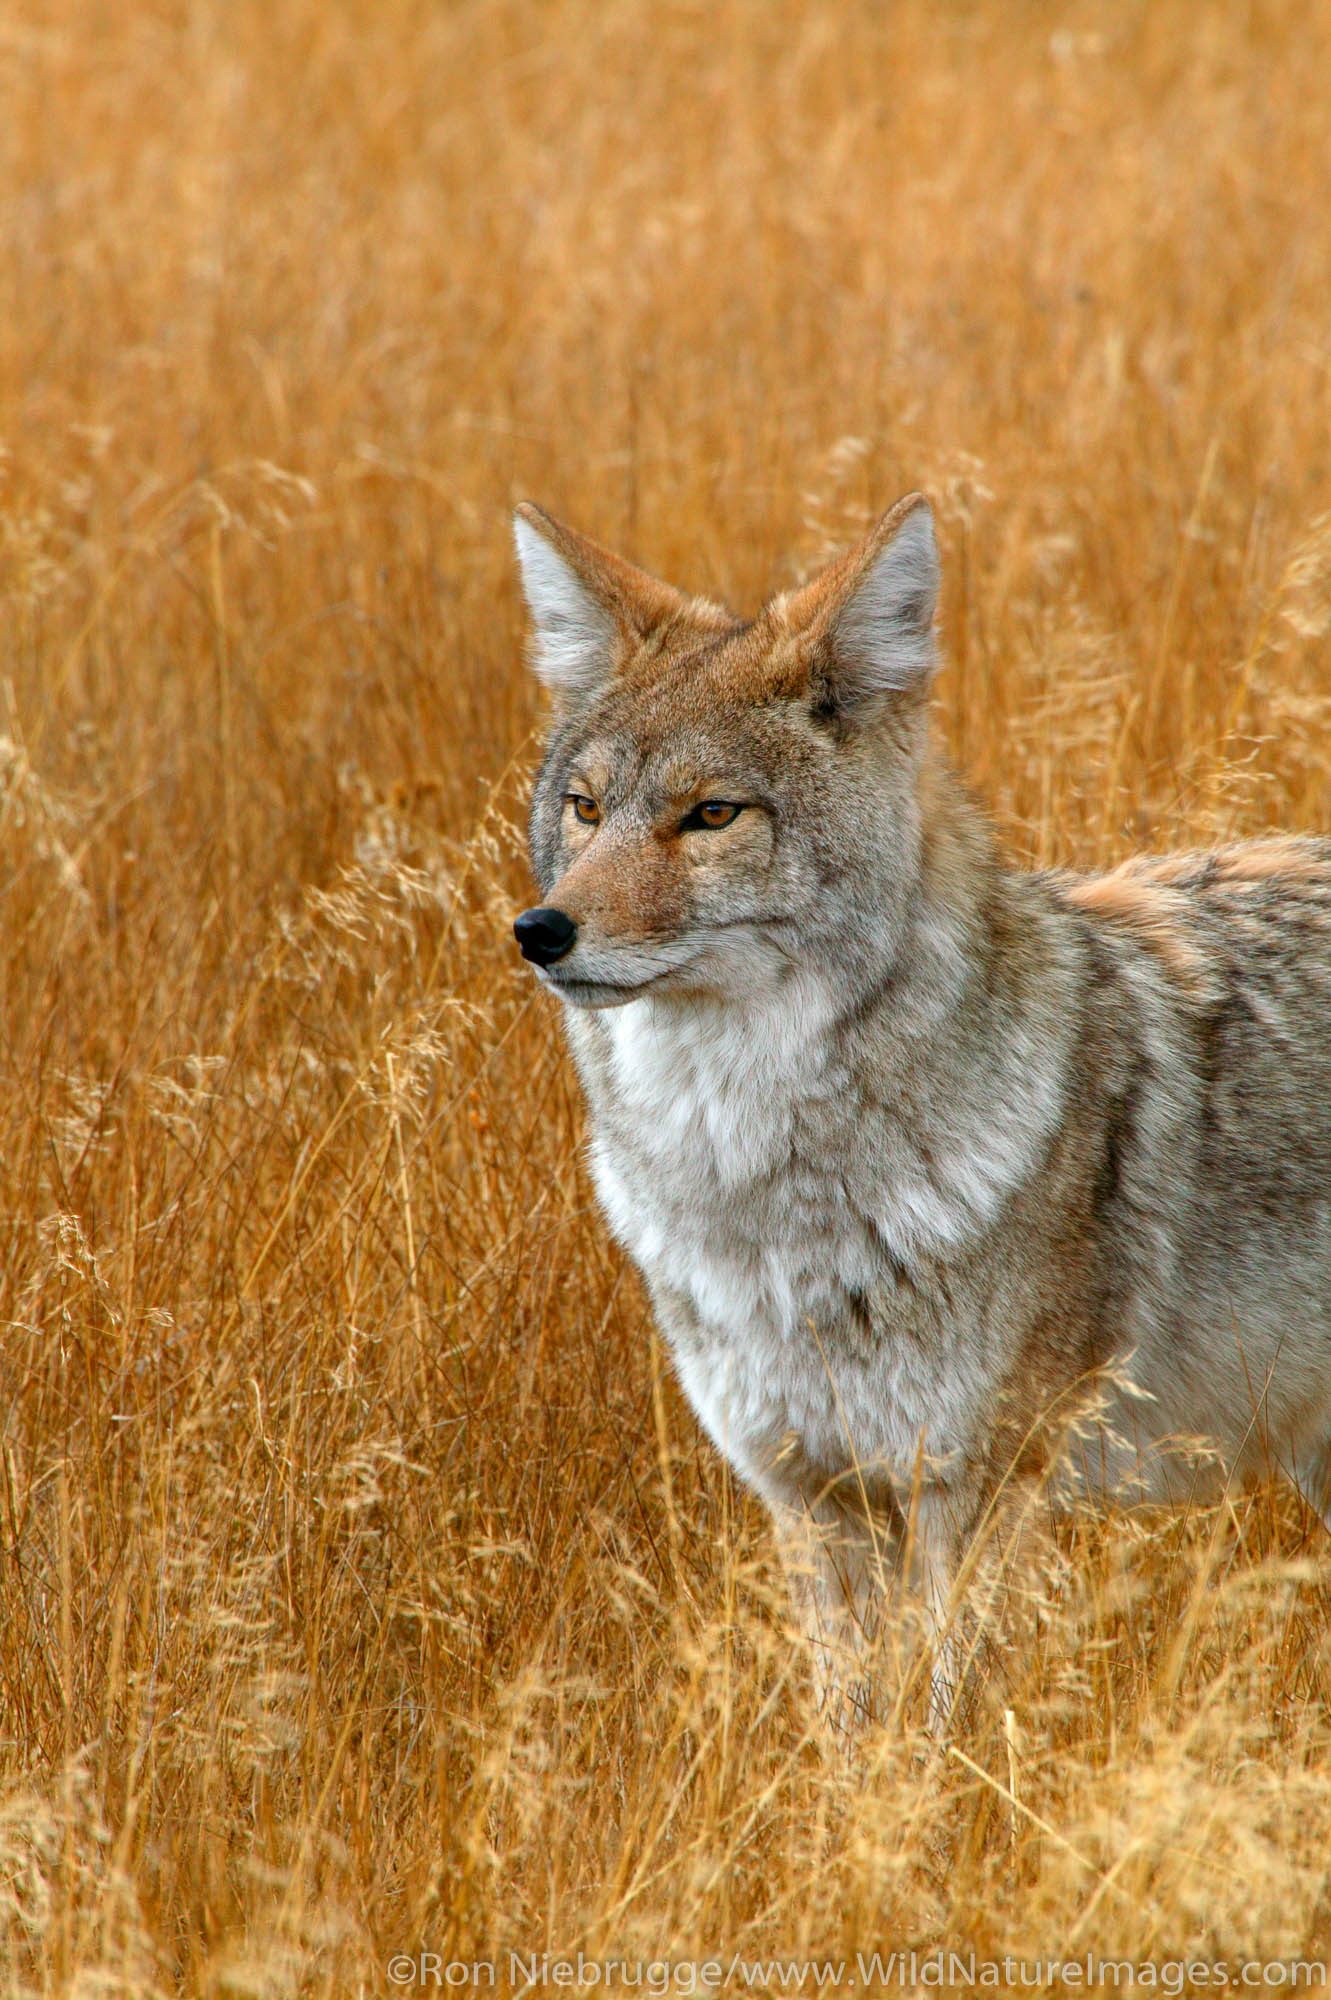 Coyote near Norris, Yellowstone National Park, Wyoming.